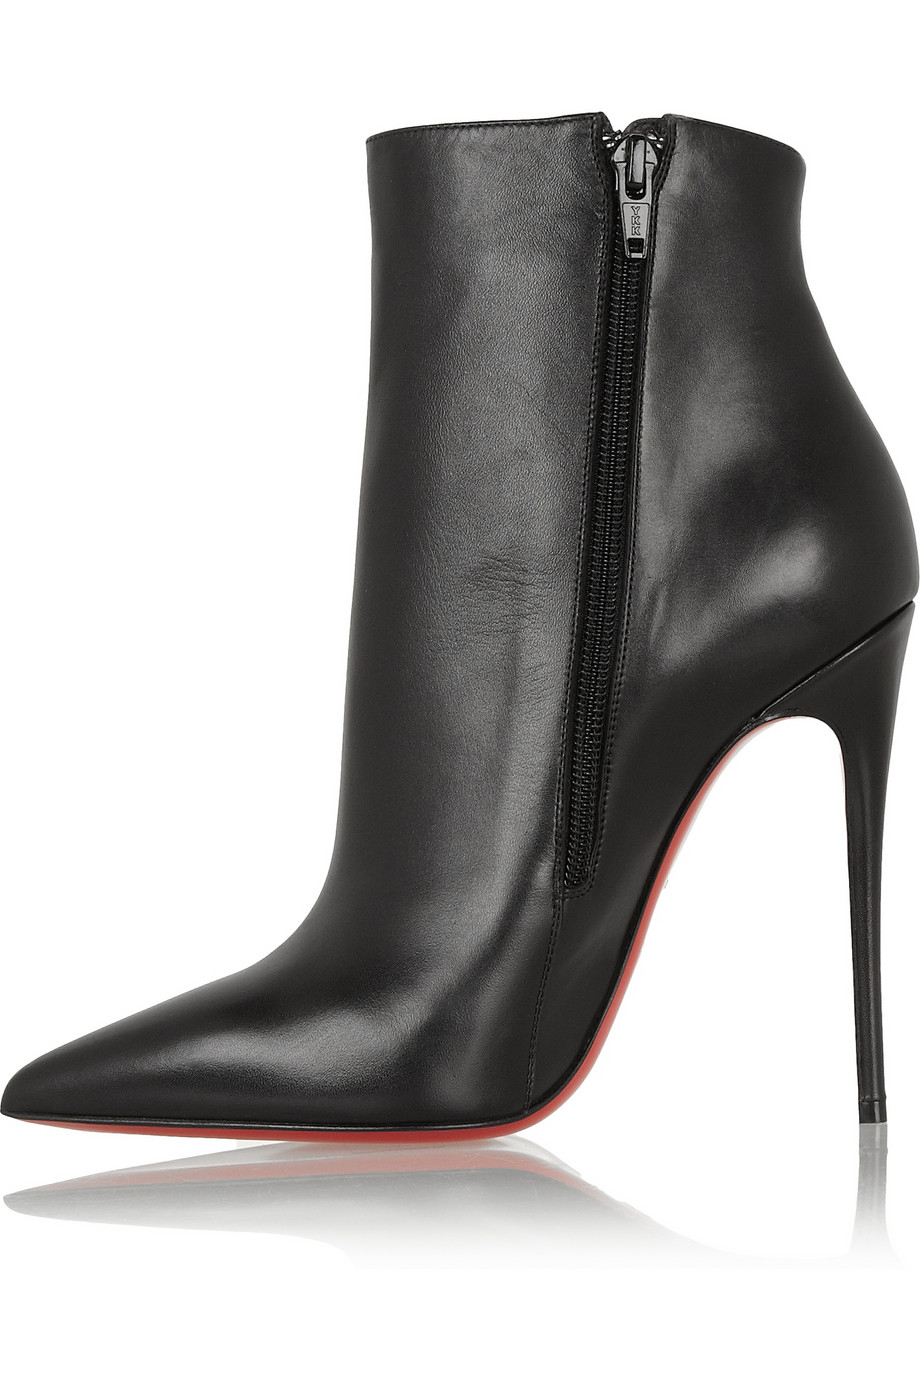 Lyst Christian Louboutin So Kate Booty Red Sole Ankle